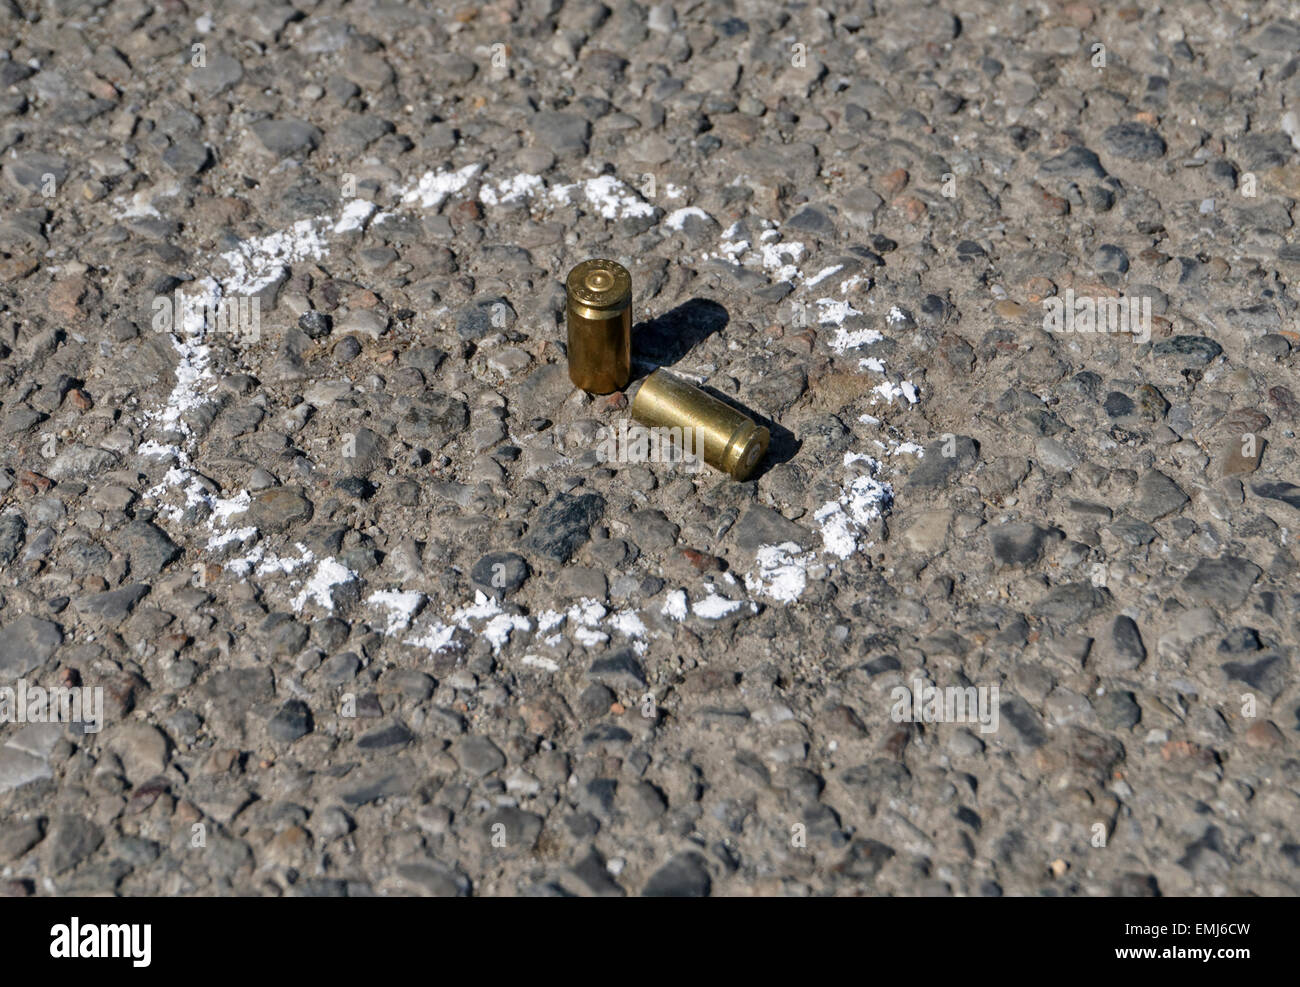 Bullets on ground with chalk drawn around - Stock Image